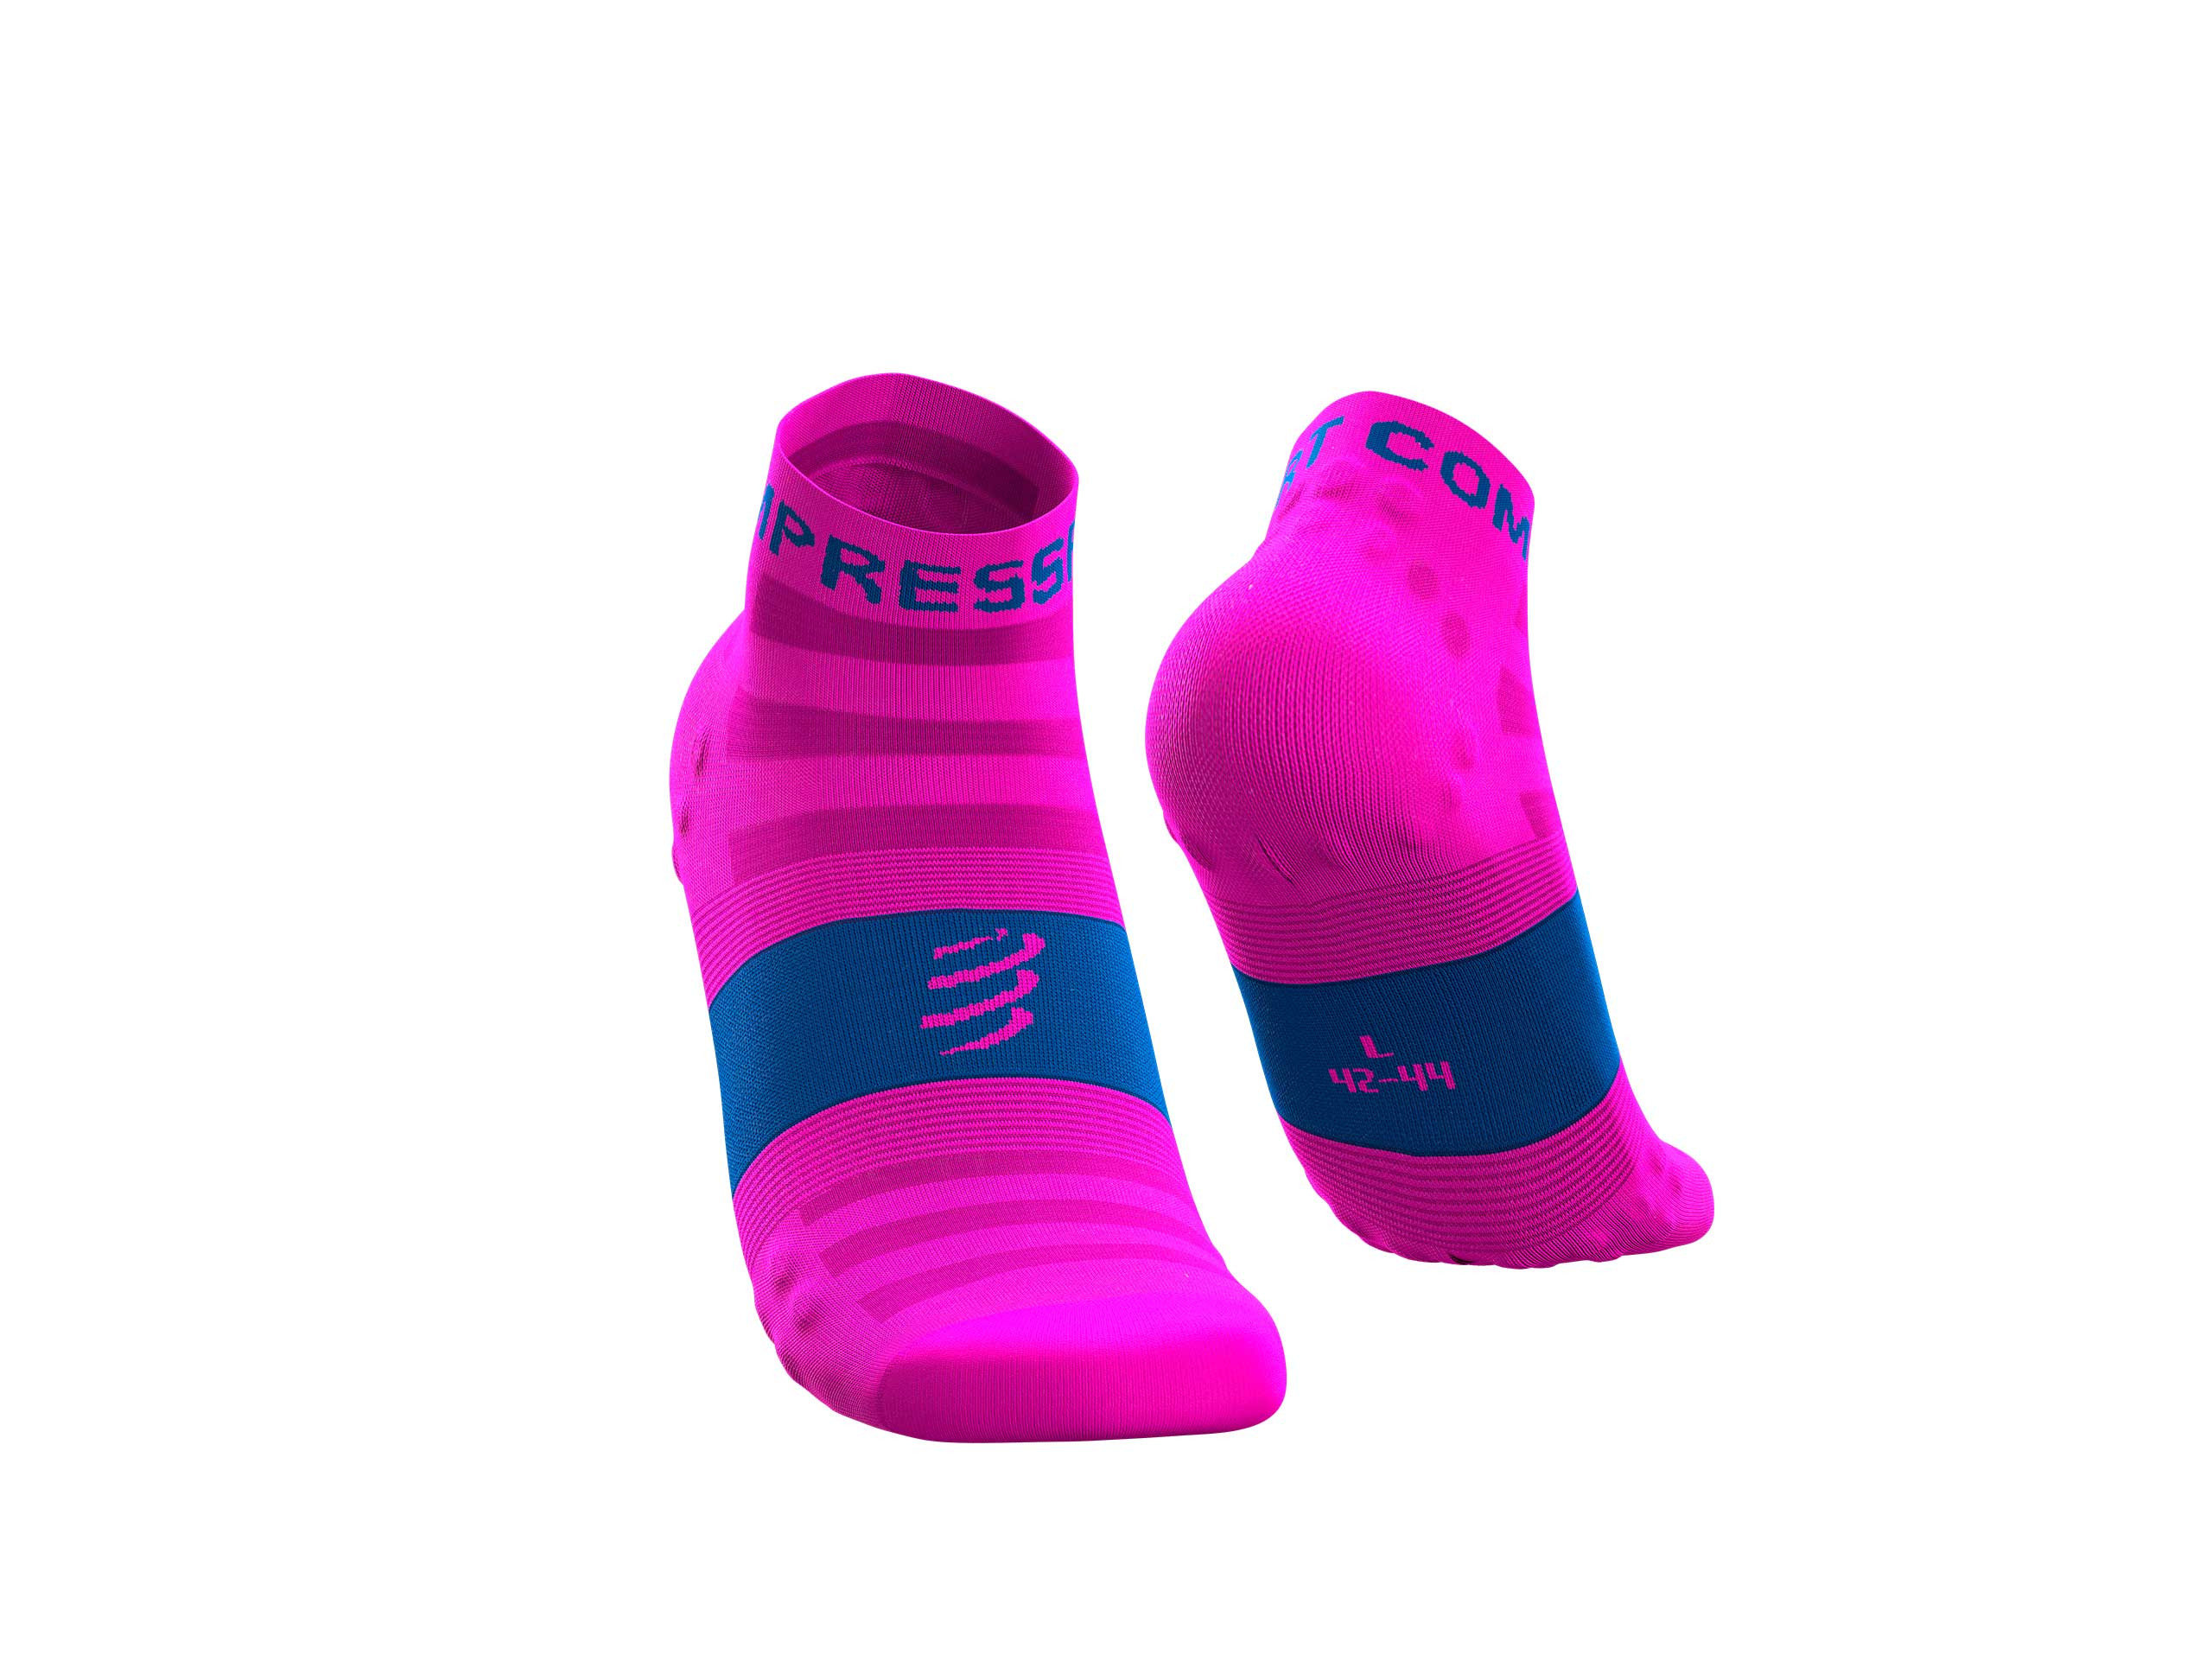 Pro Racing Socks v3.0 Ultralight Run Low neonpink